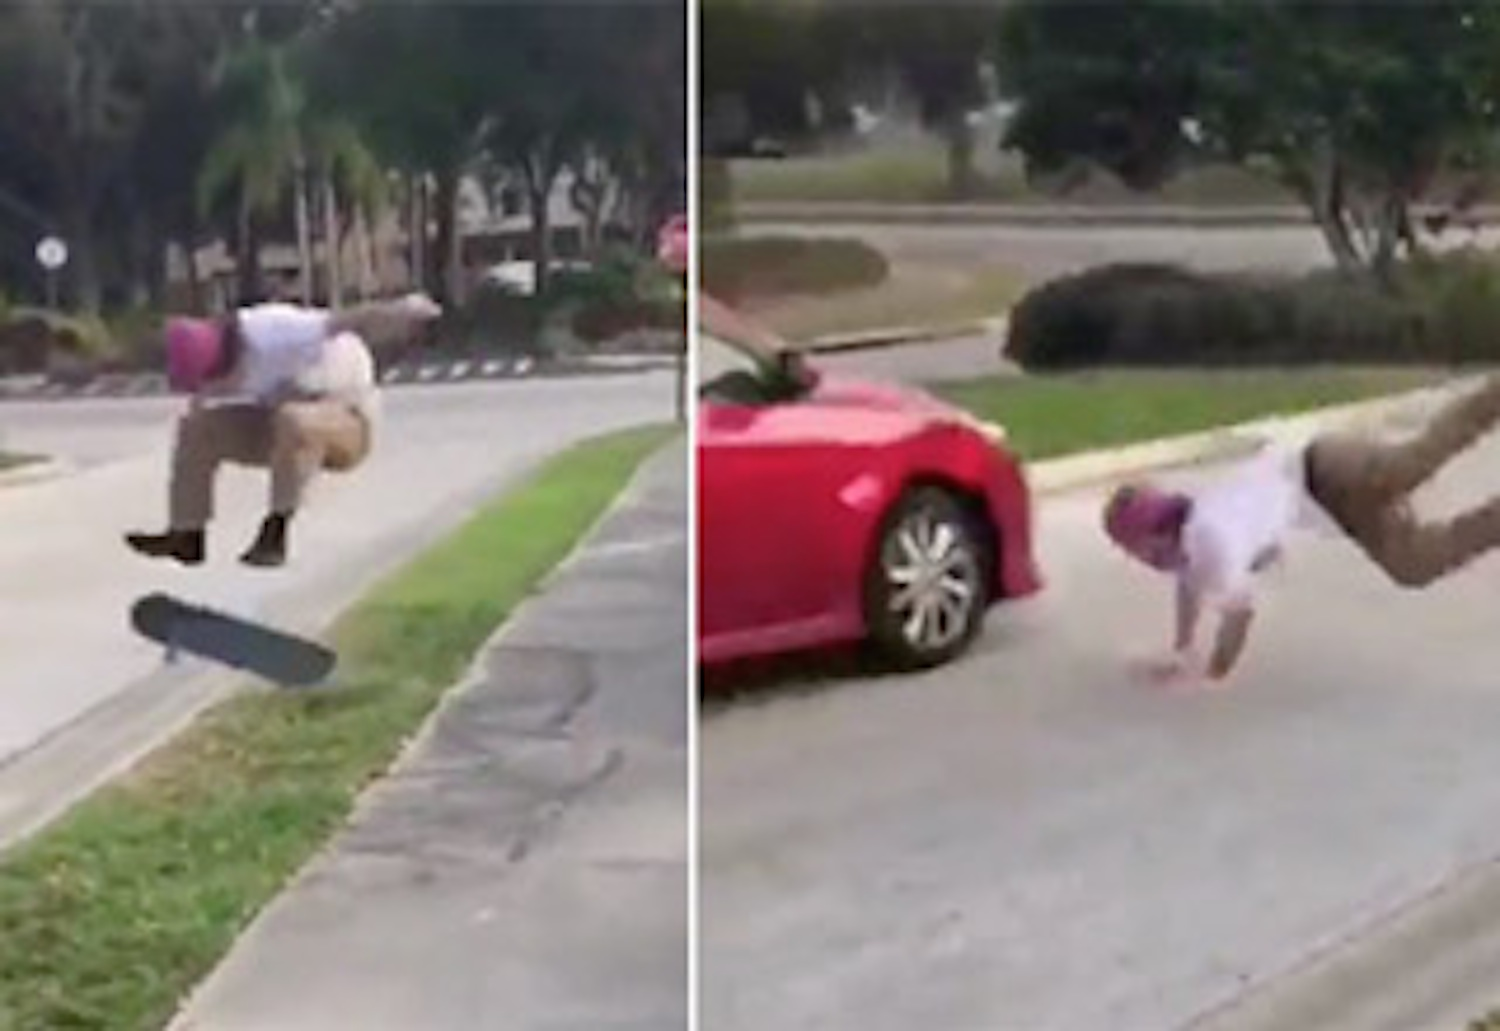 Skateboarder Crushed Extremely Close Call